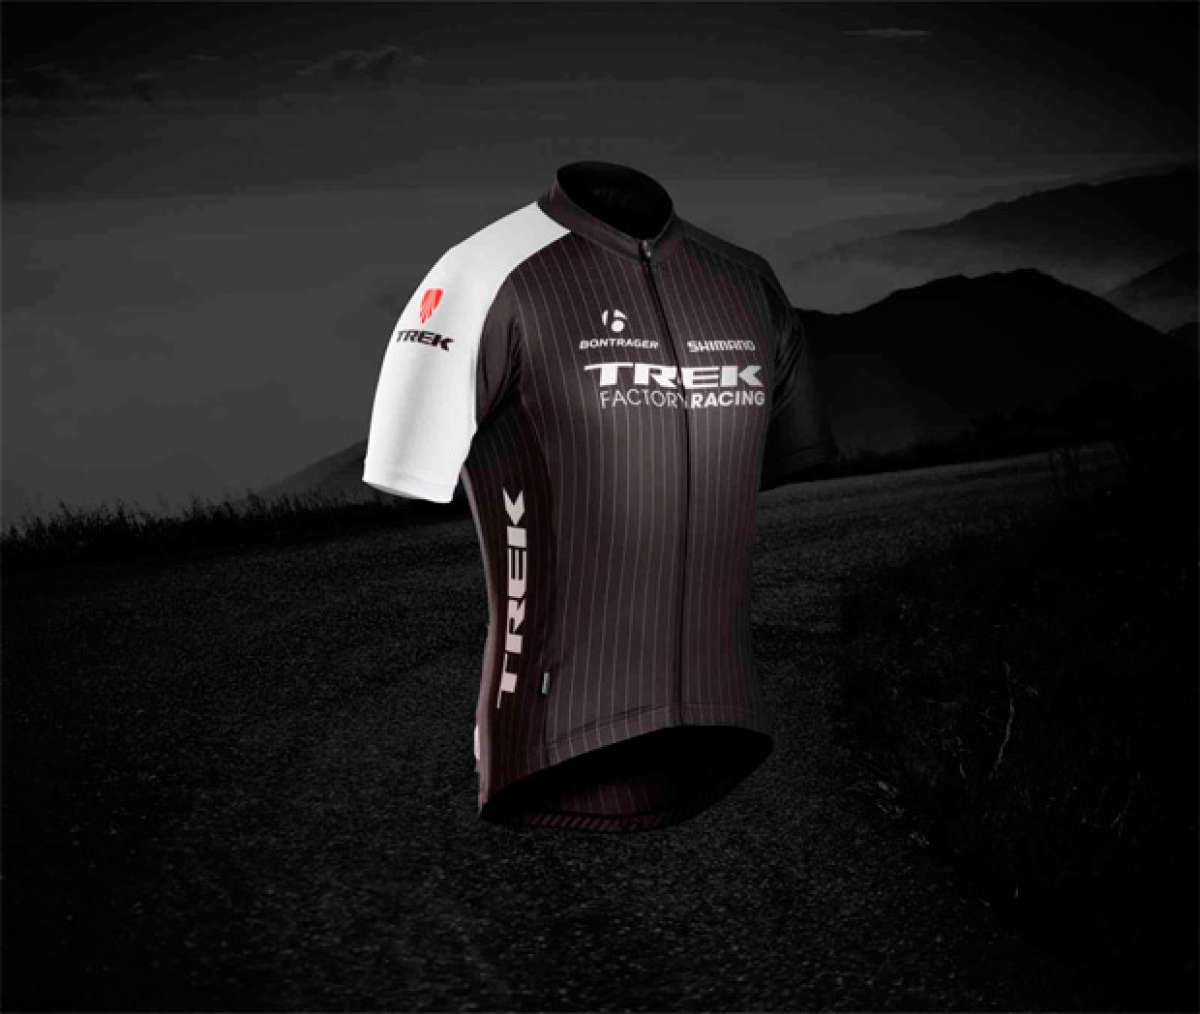 La nueva equipación Trek Factory Racing, ya disponible